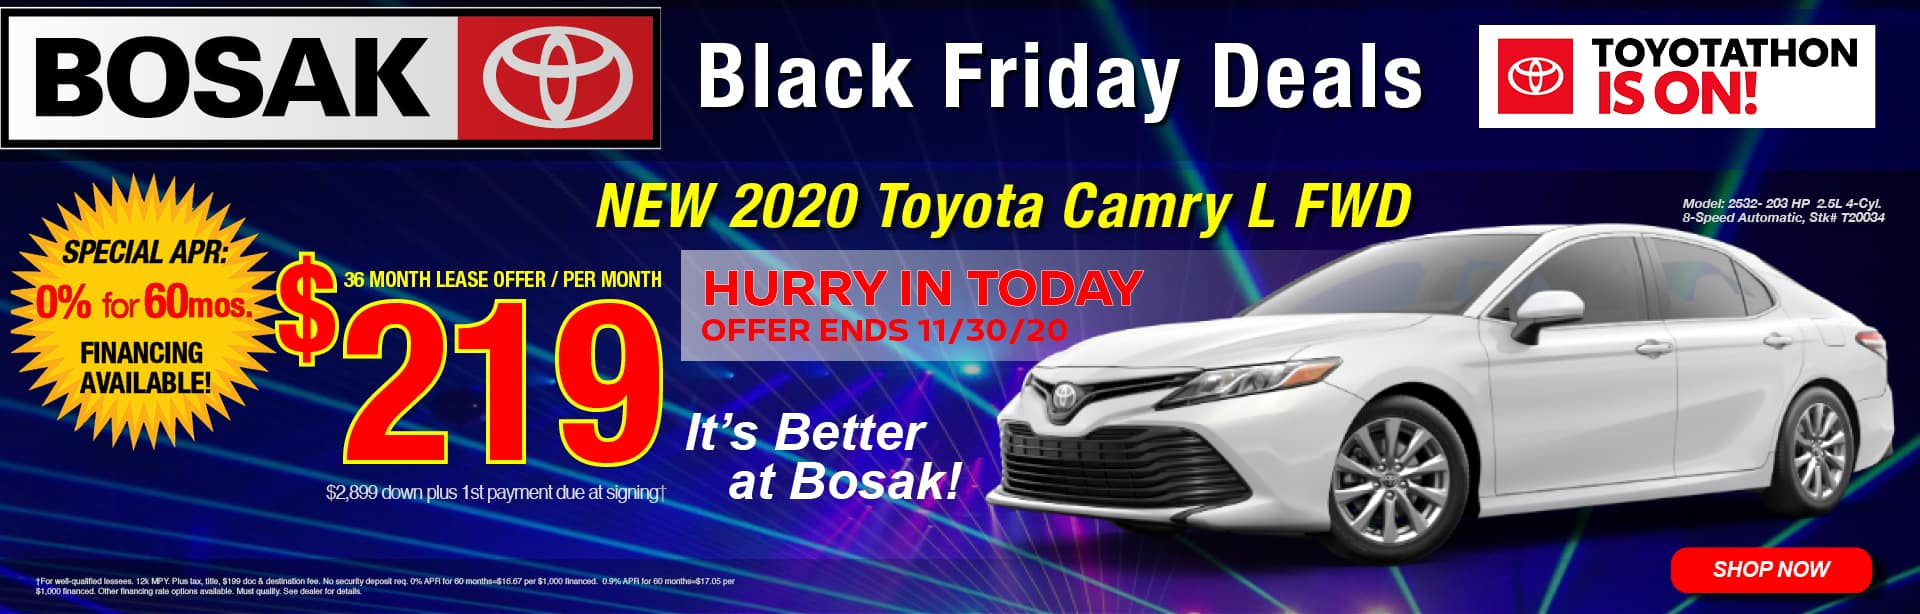 Black Friday Special - lease a 2020 Camry for $219 per month